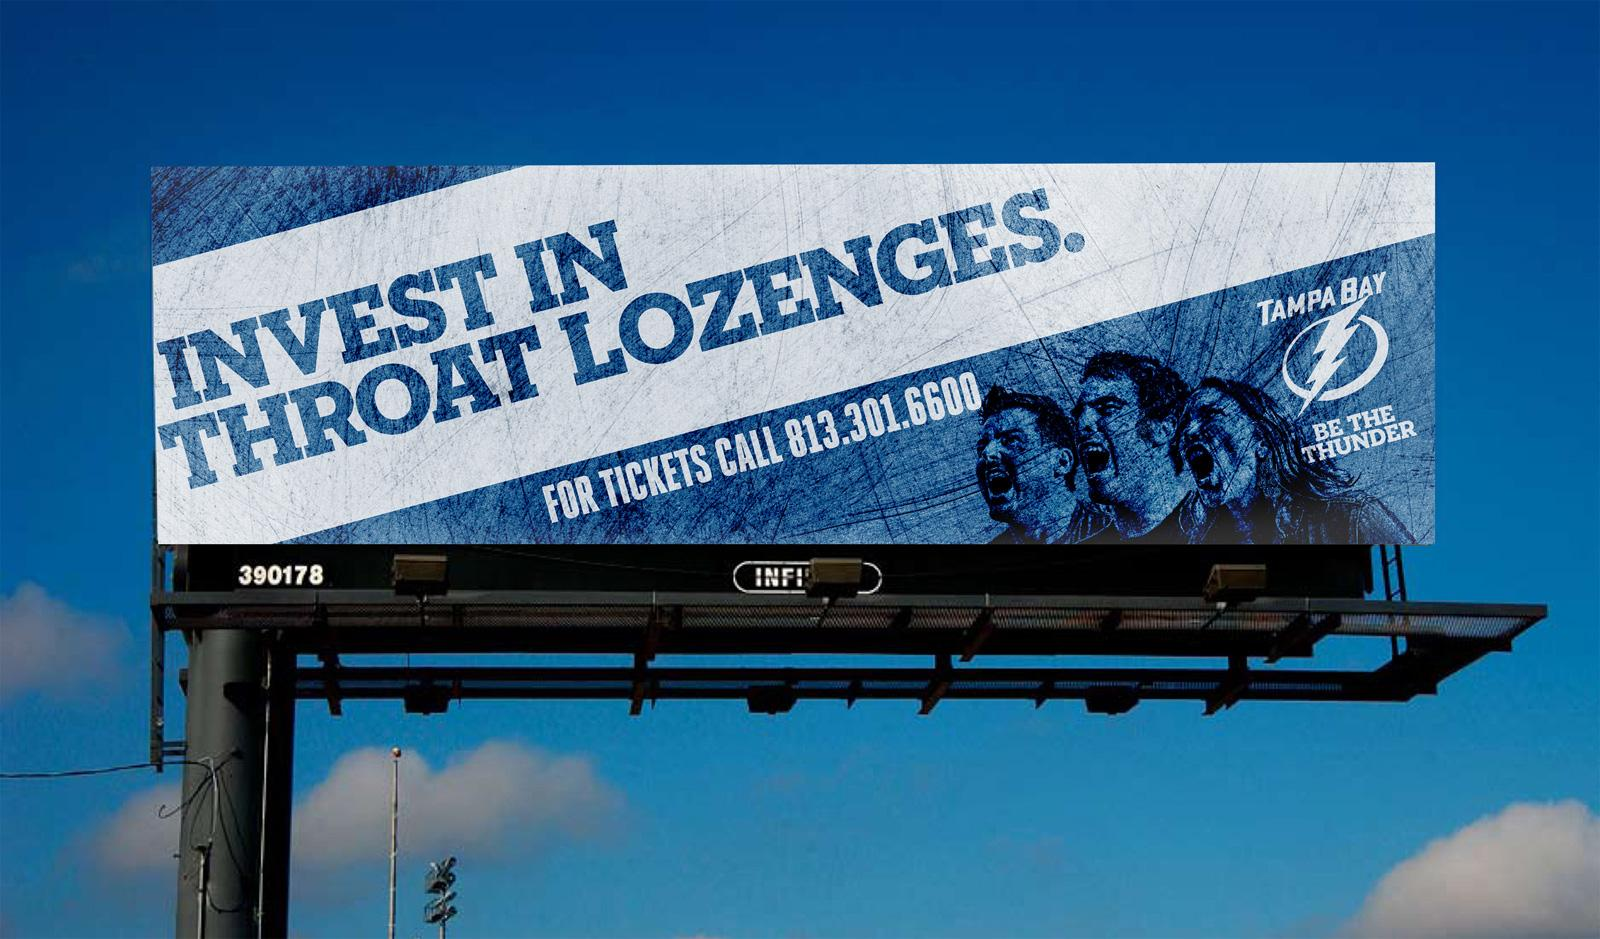 Tampa Bay Lightning Outdoor Ad -  Lozenges